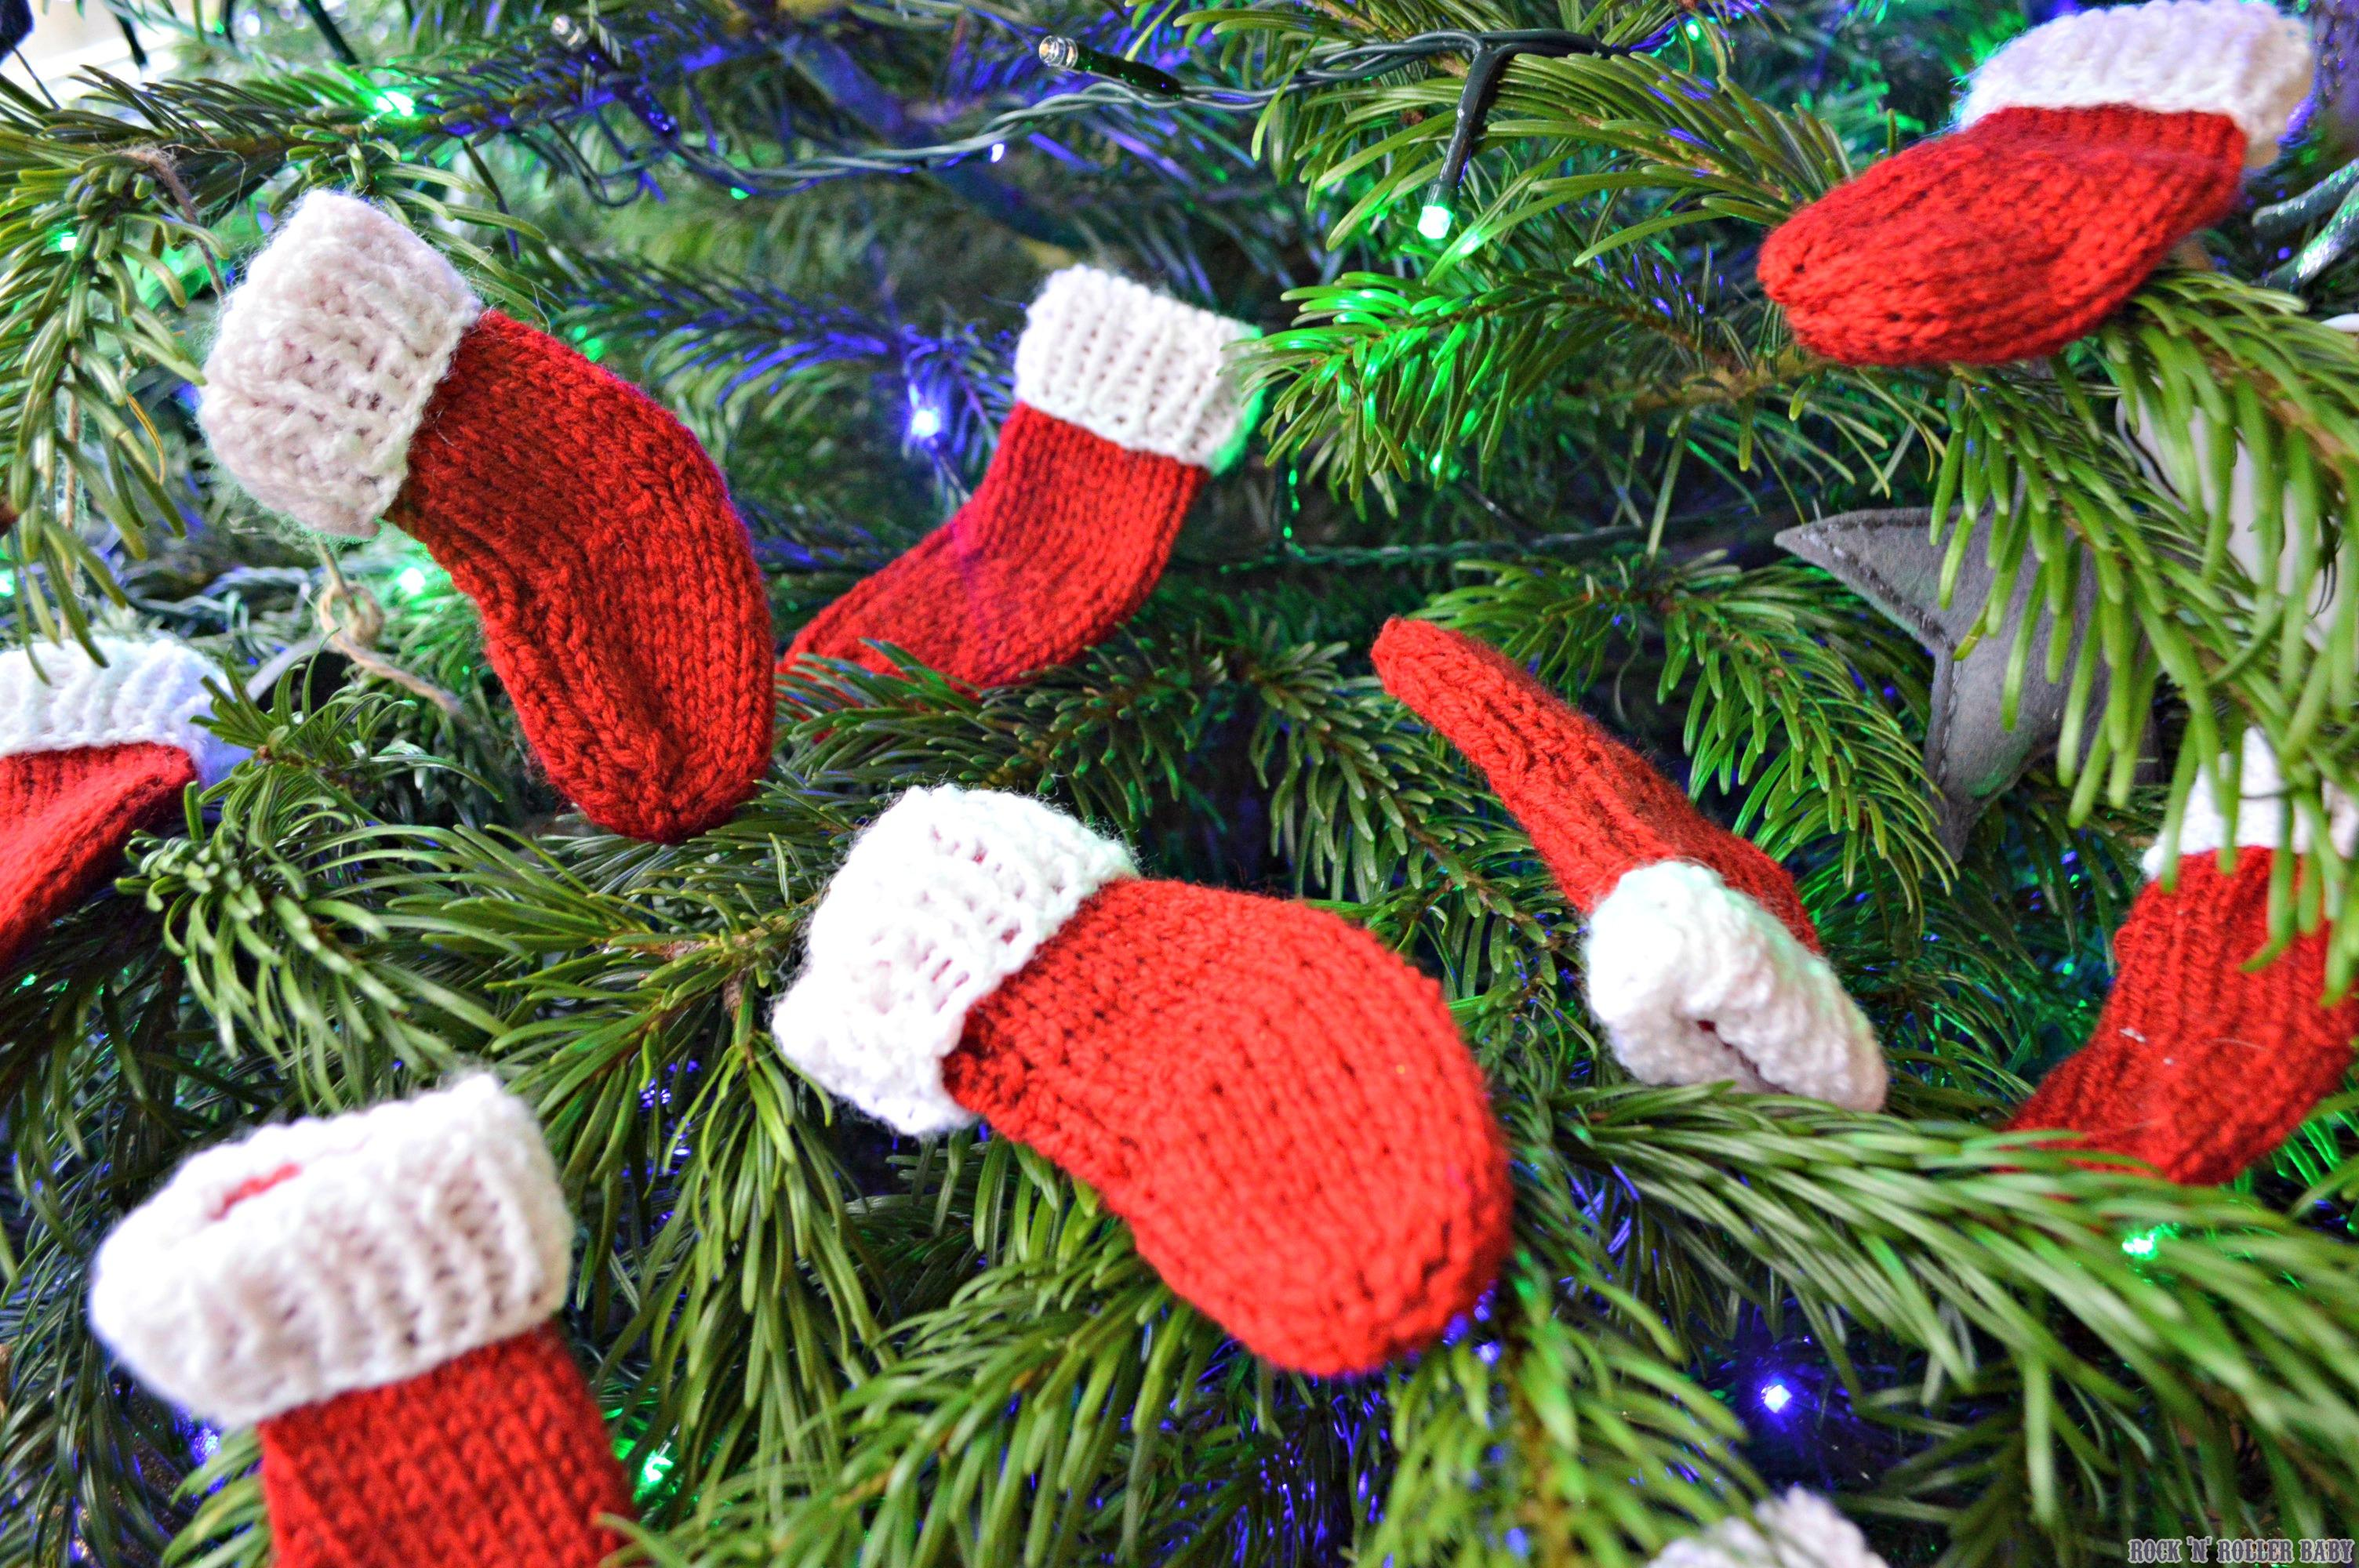 Knitted Afghan Patterns In Squares : Mini Christmas Stockings   FREE Knitting Pattern! RocknRollerBaby